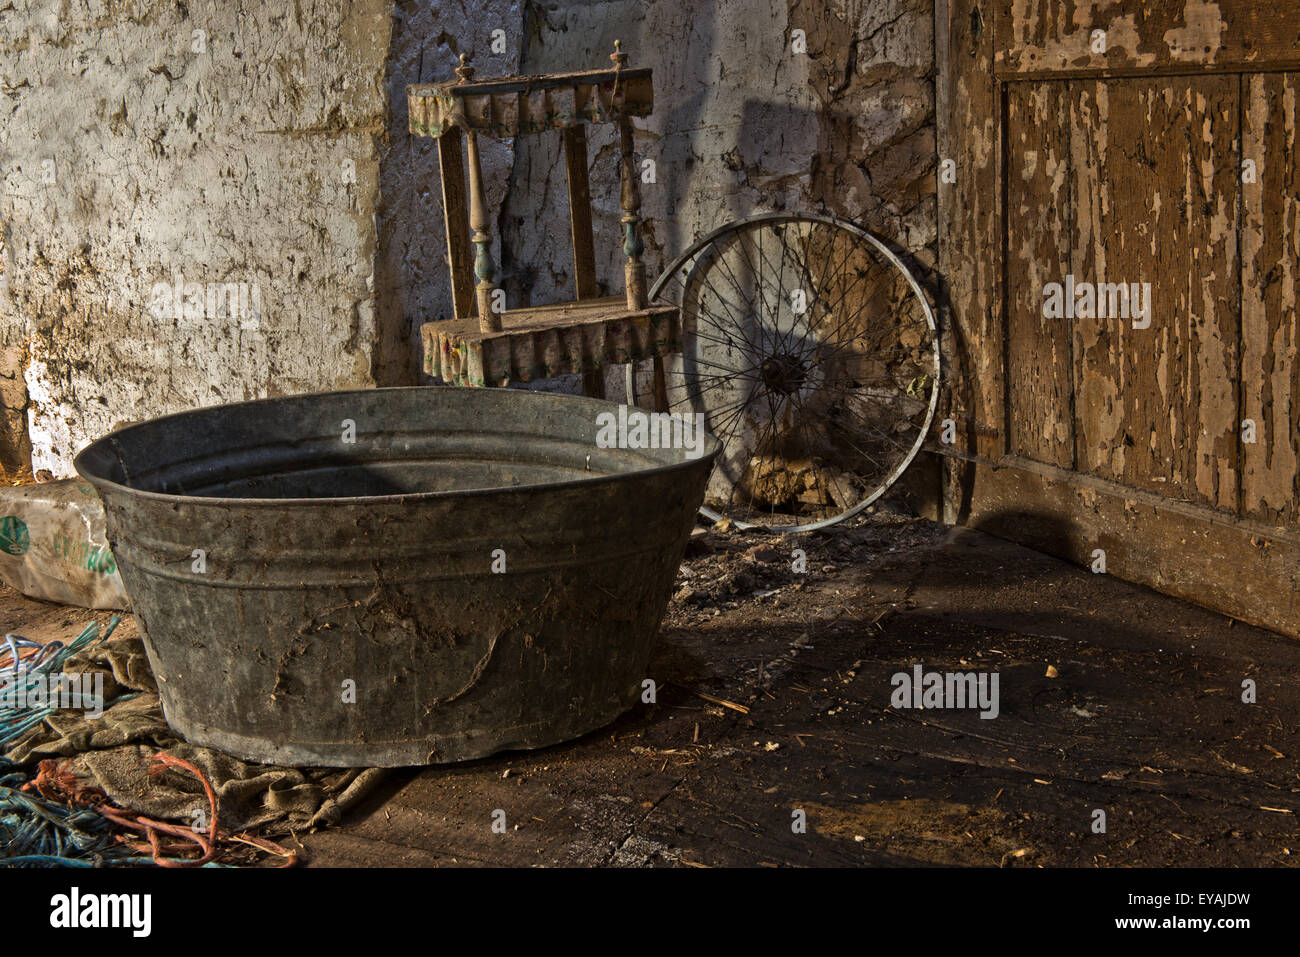 Urban Explore of an abandoned farmstead in Belgium which still has most of its features and furniture. - Stock Image